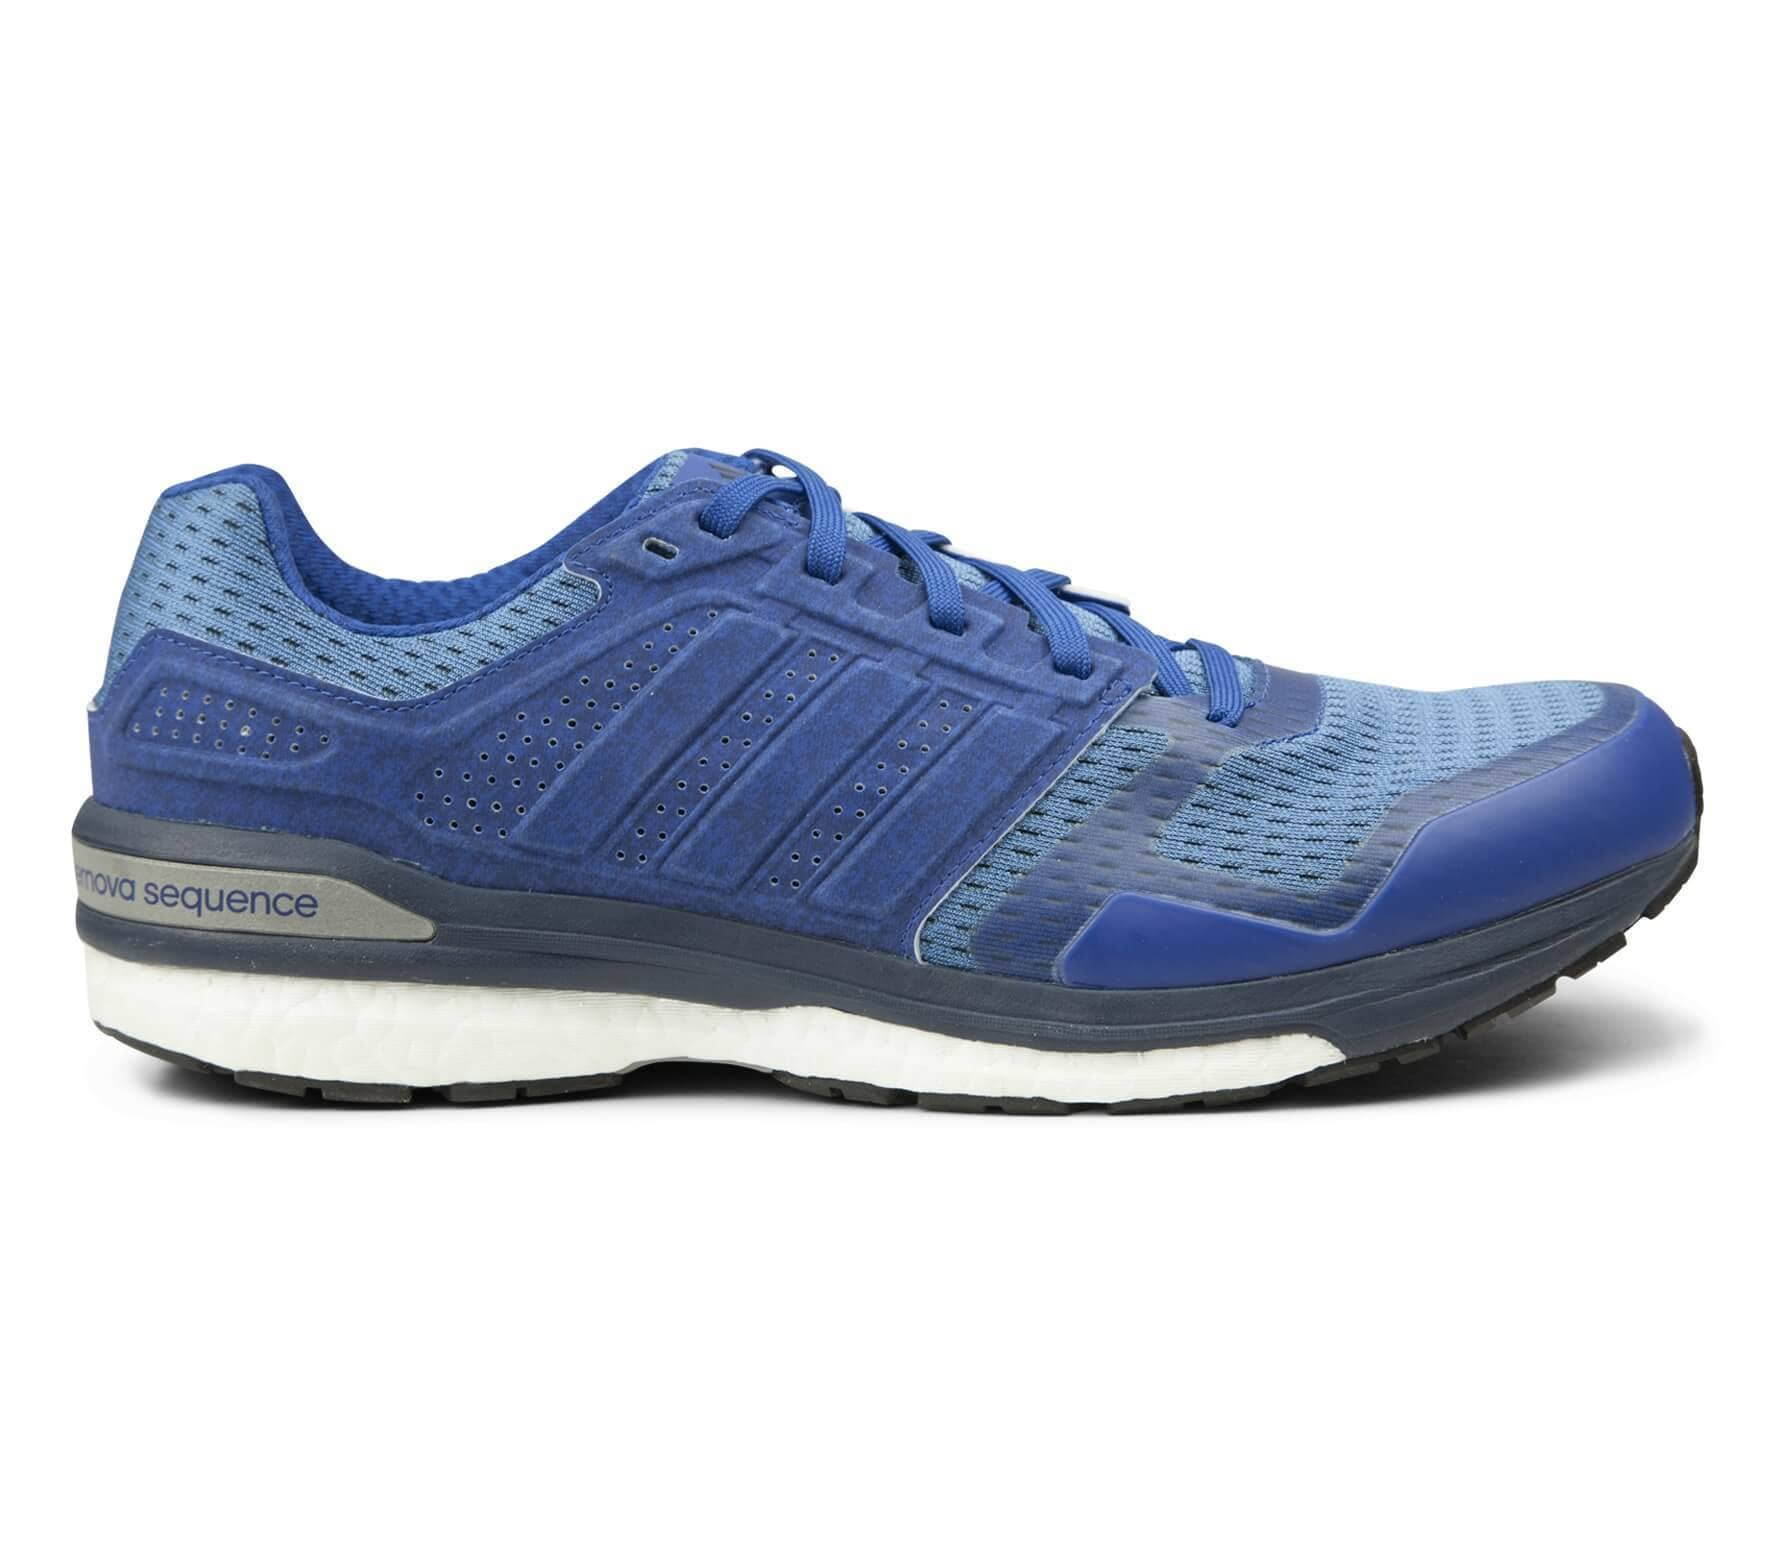 db00c543fcadd Adidas - Supernova Sequence Boost 8 Reflective men s running shoes (dark  blue)